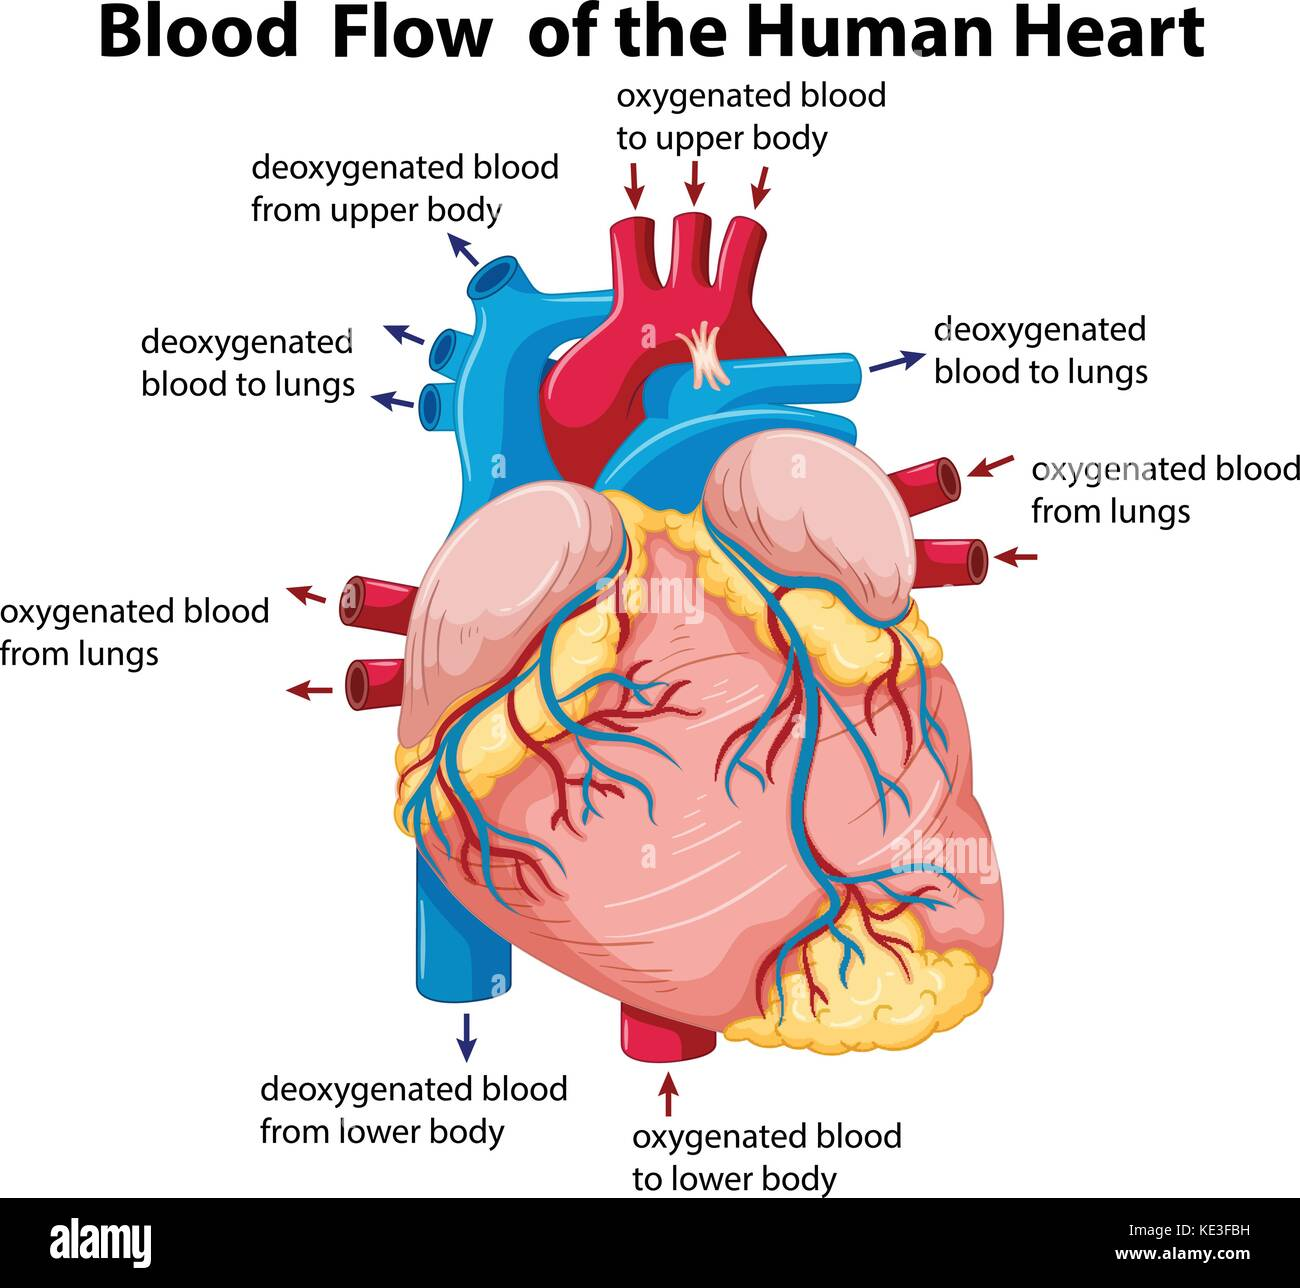 Diagram showing blood flow in human heart illustration stock diagram showing blood flow in human heart illustration ccuart Image collections